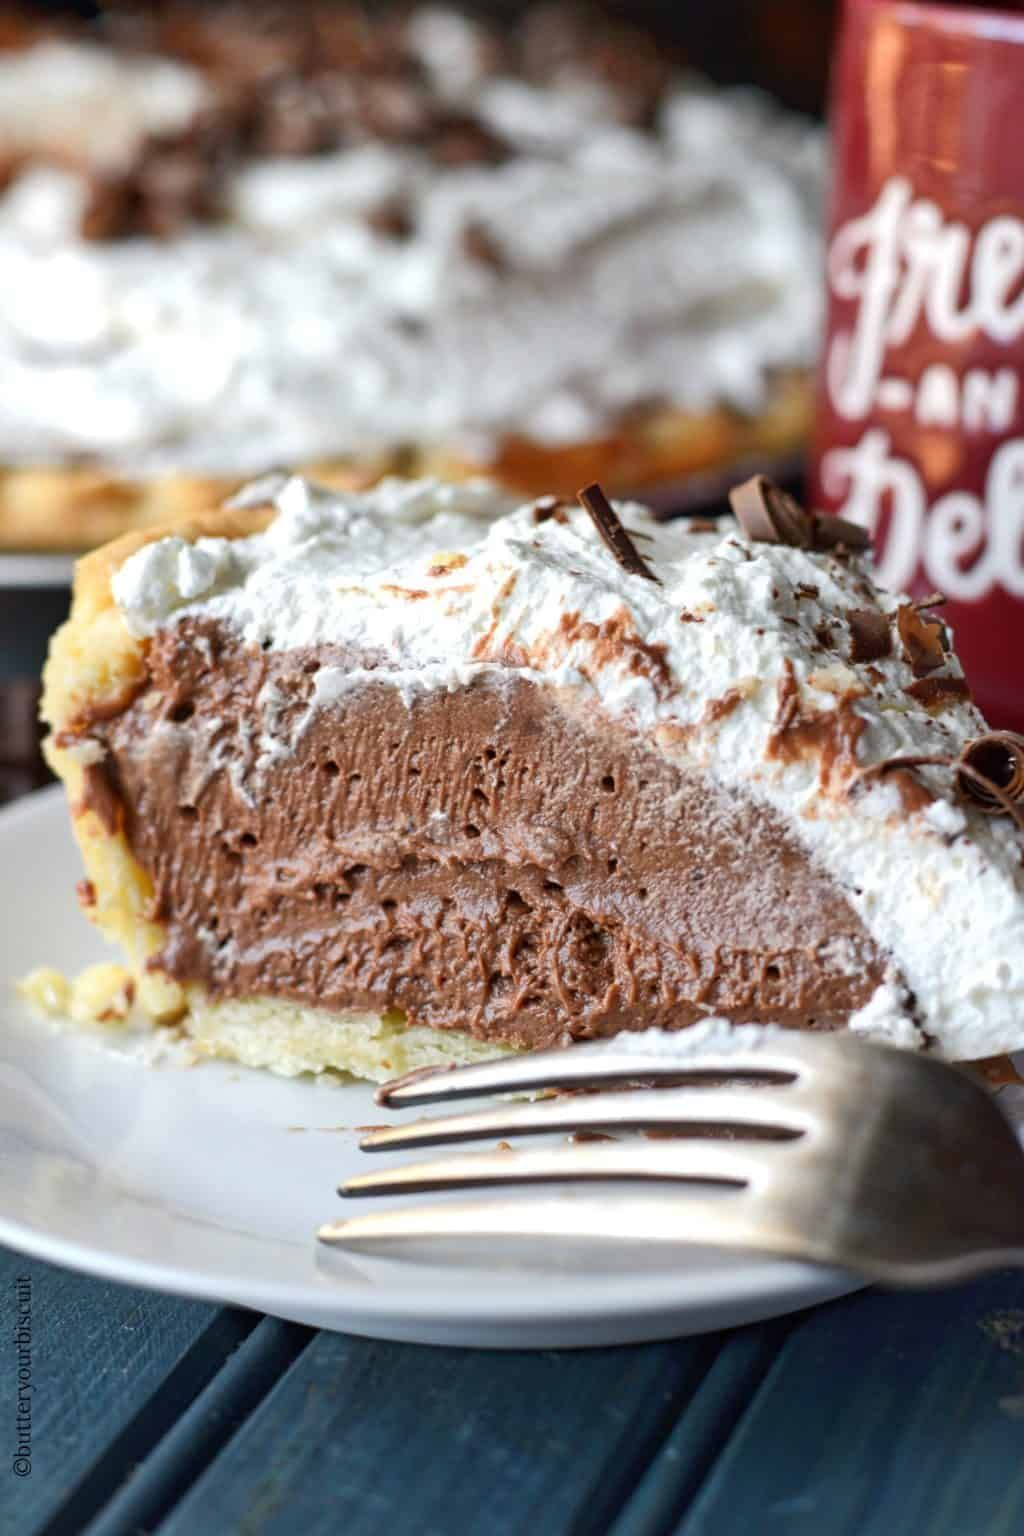 Rich and Creamy Chocolate Cream Pie